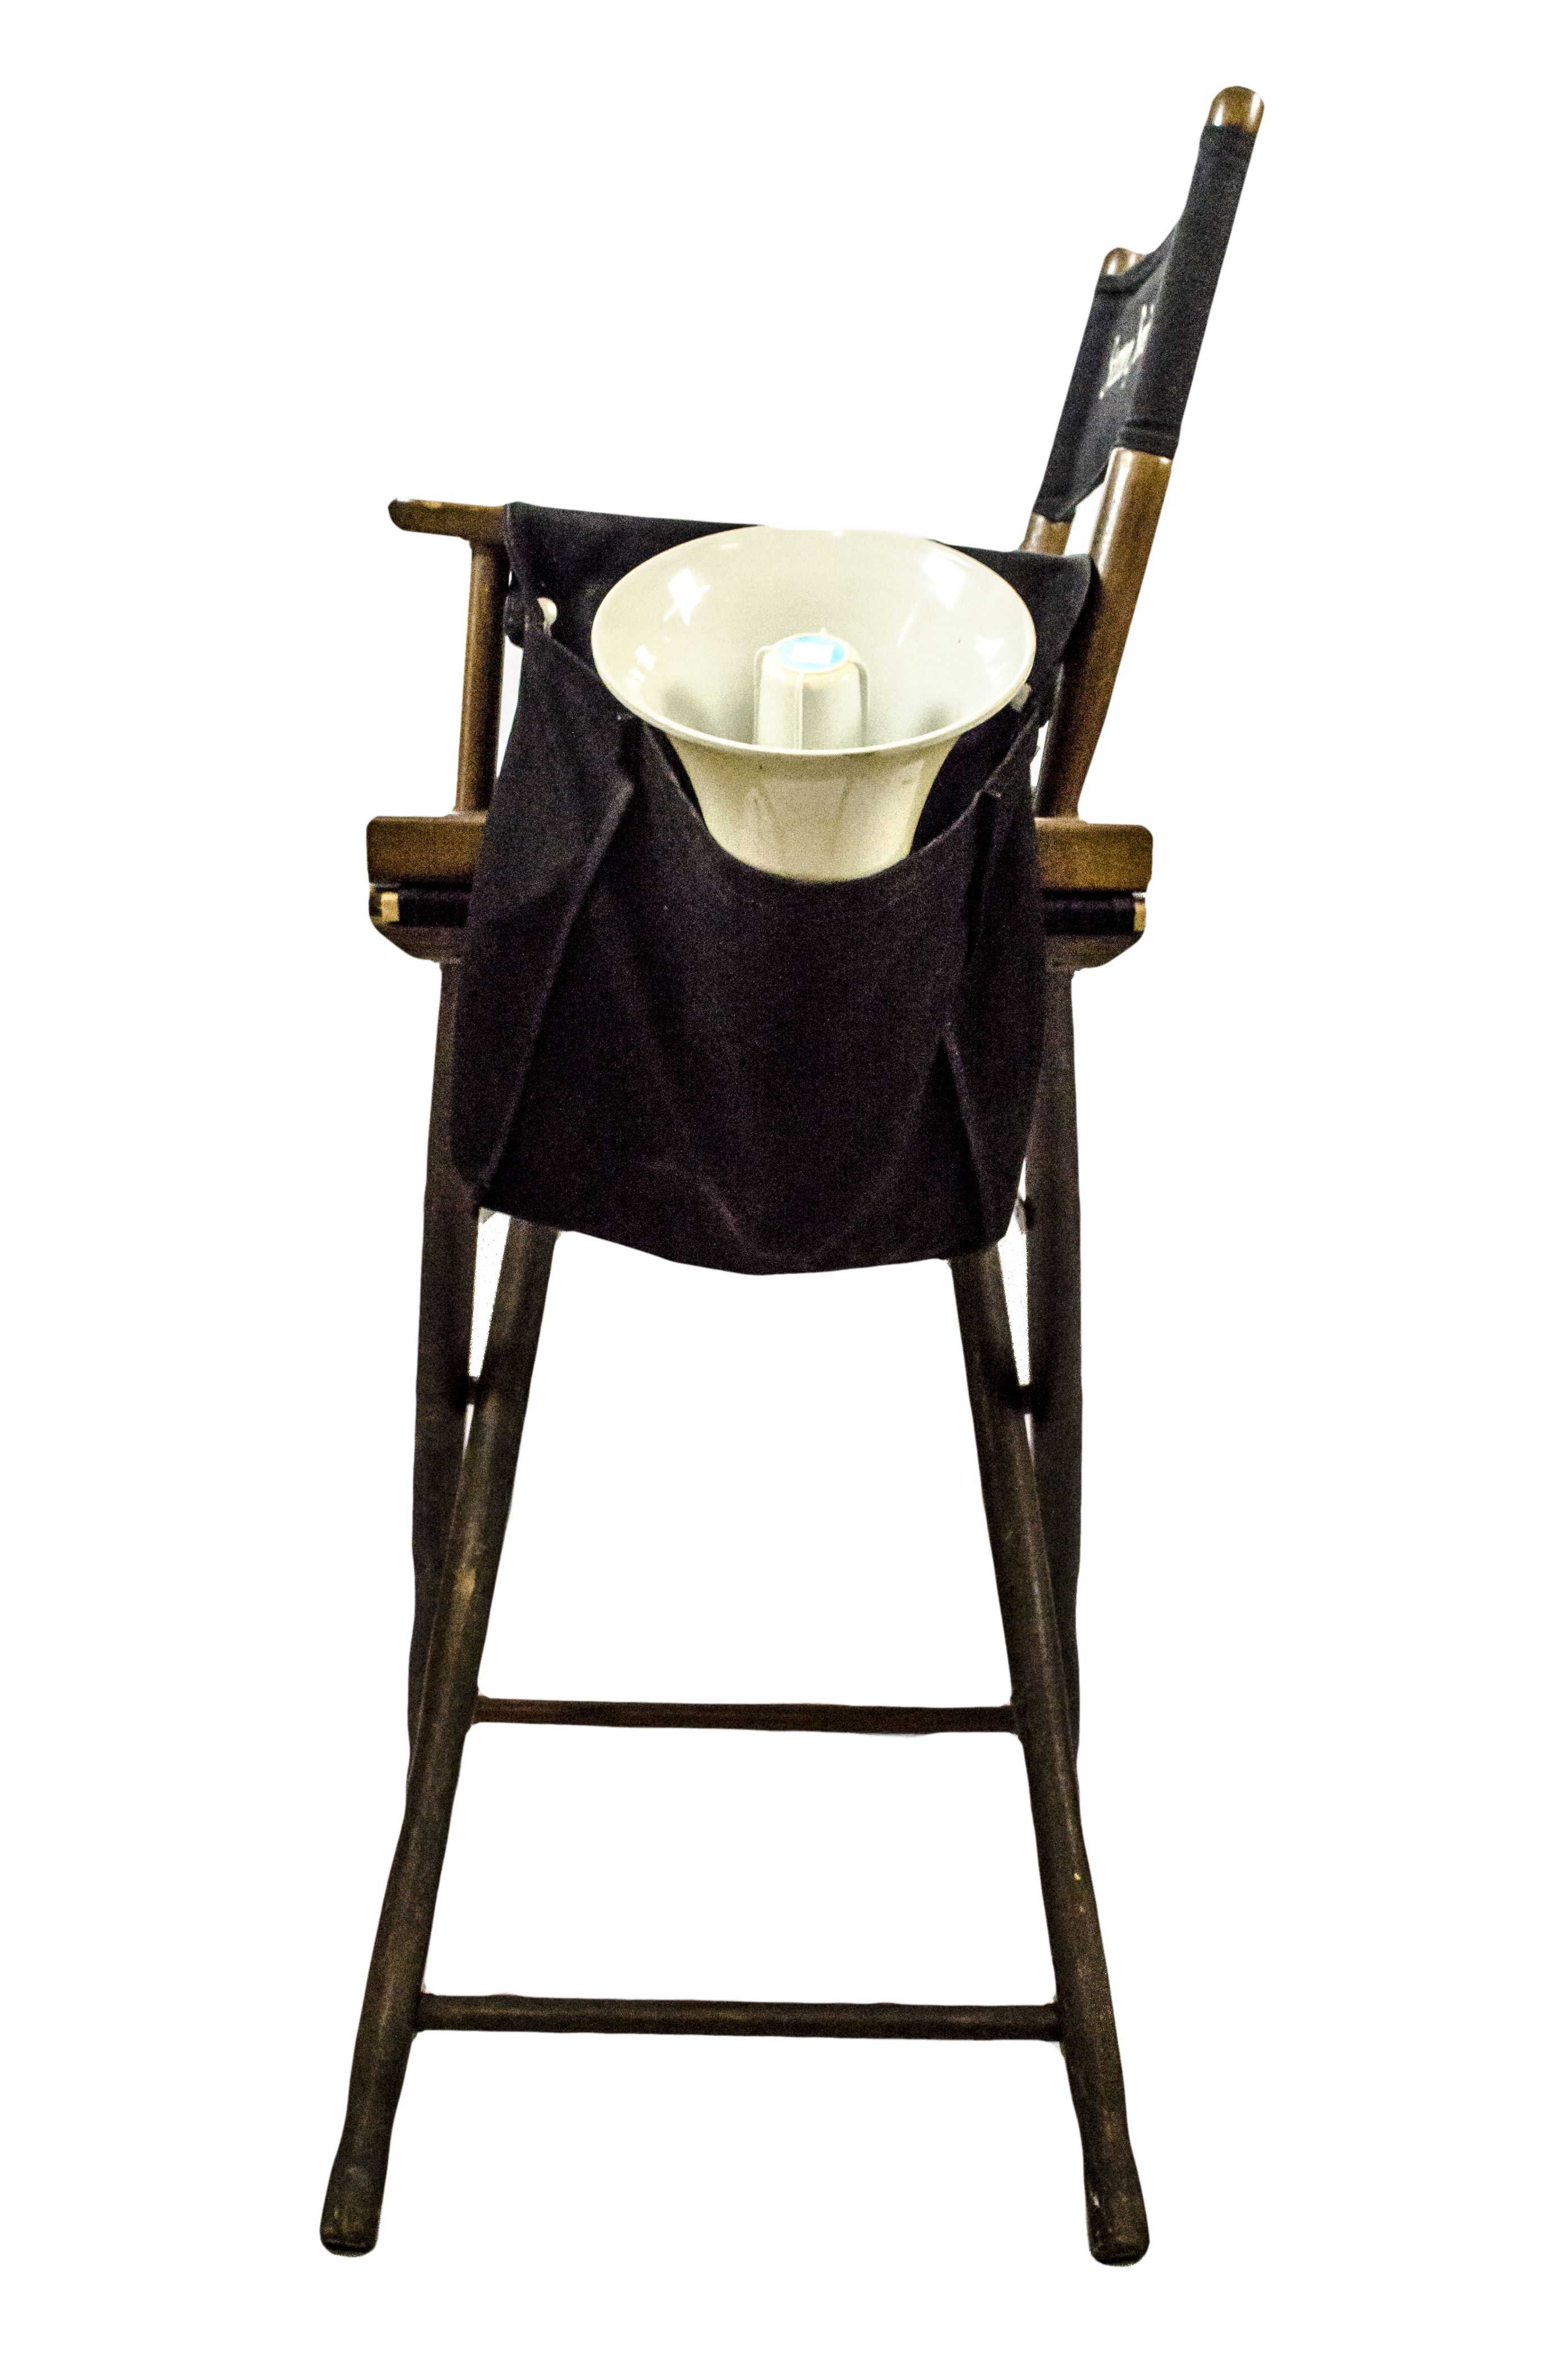 earth executive vip tall directors chair cheap fitted covers for sale lot detail steven spielberg the